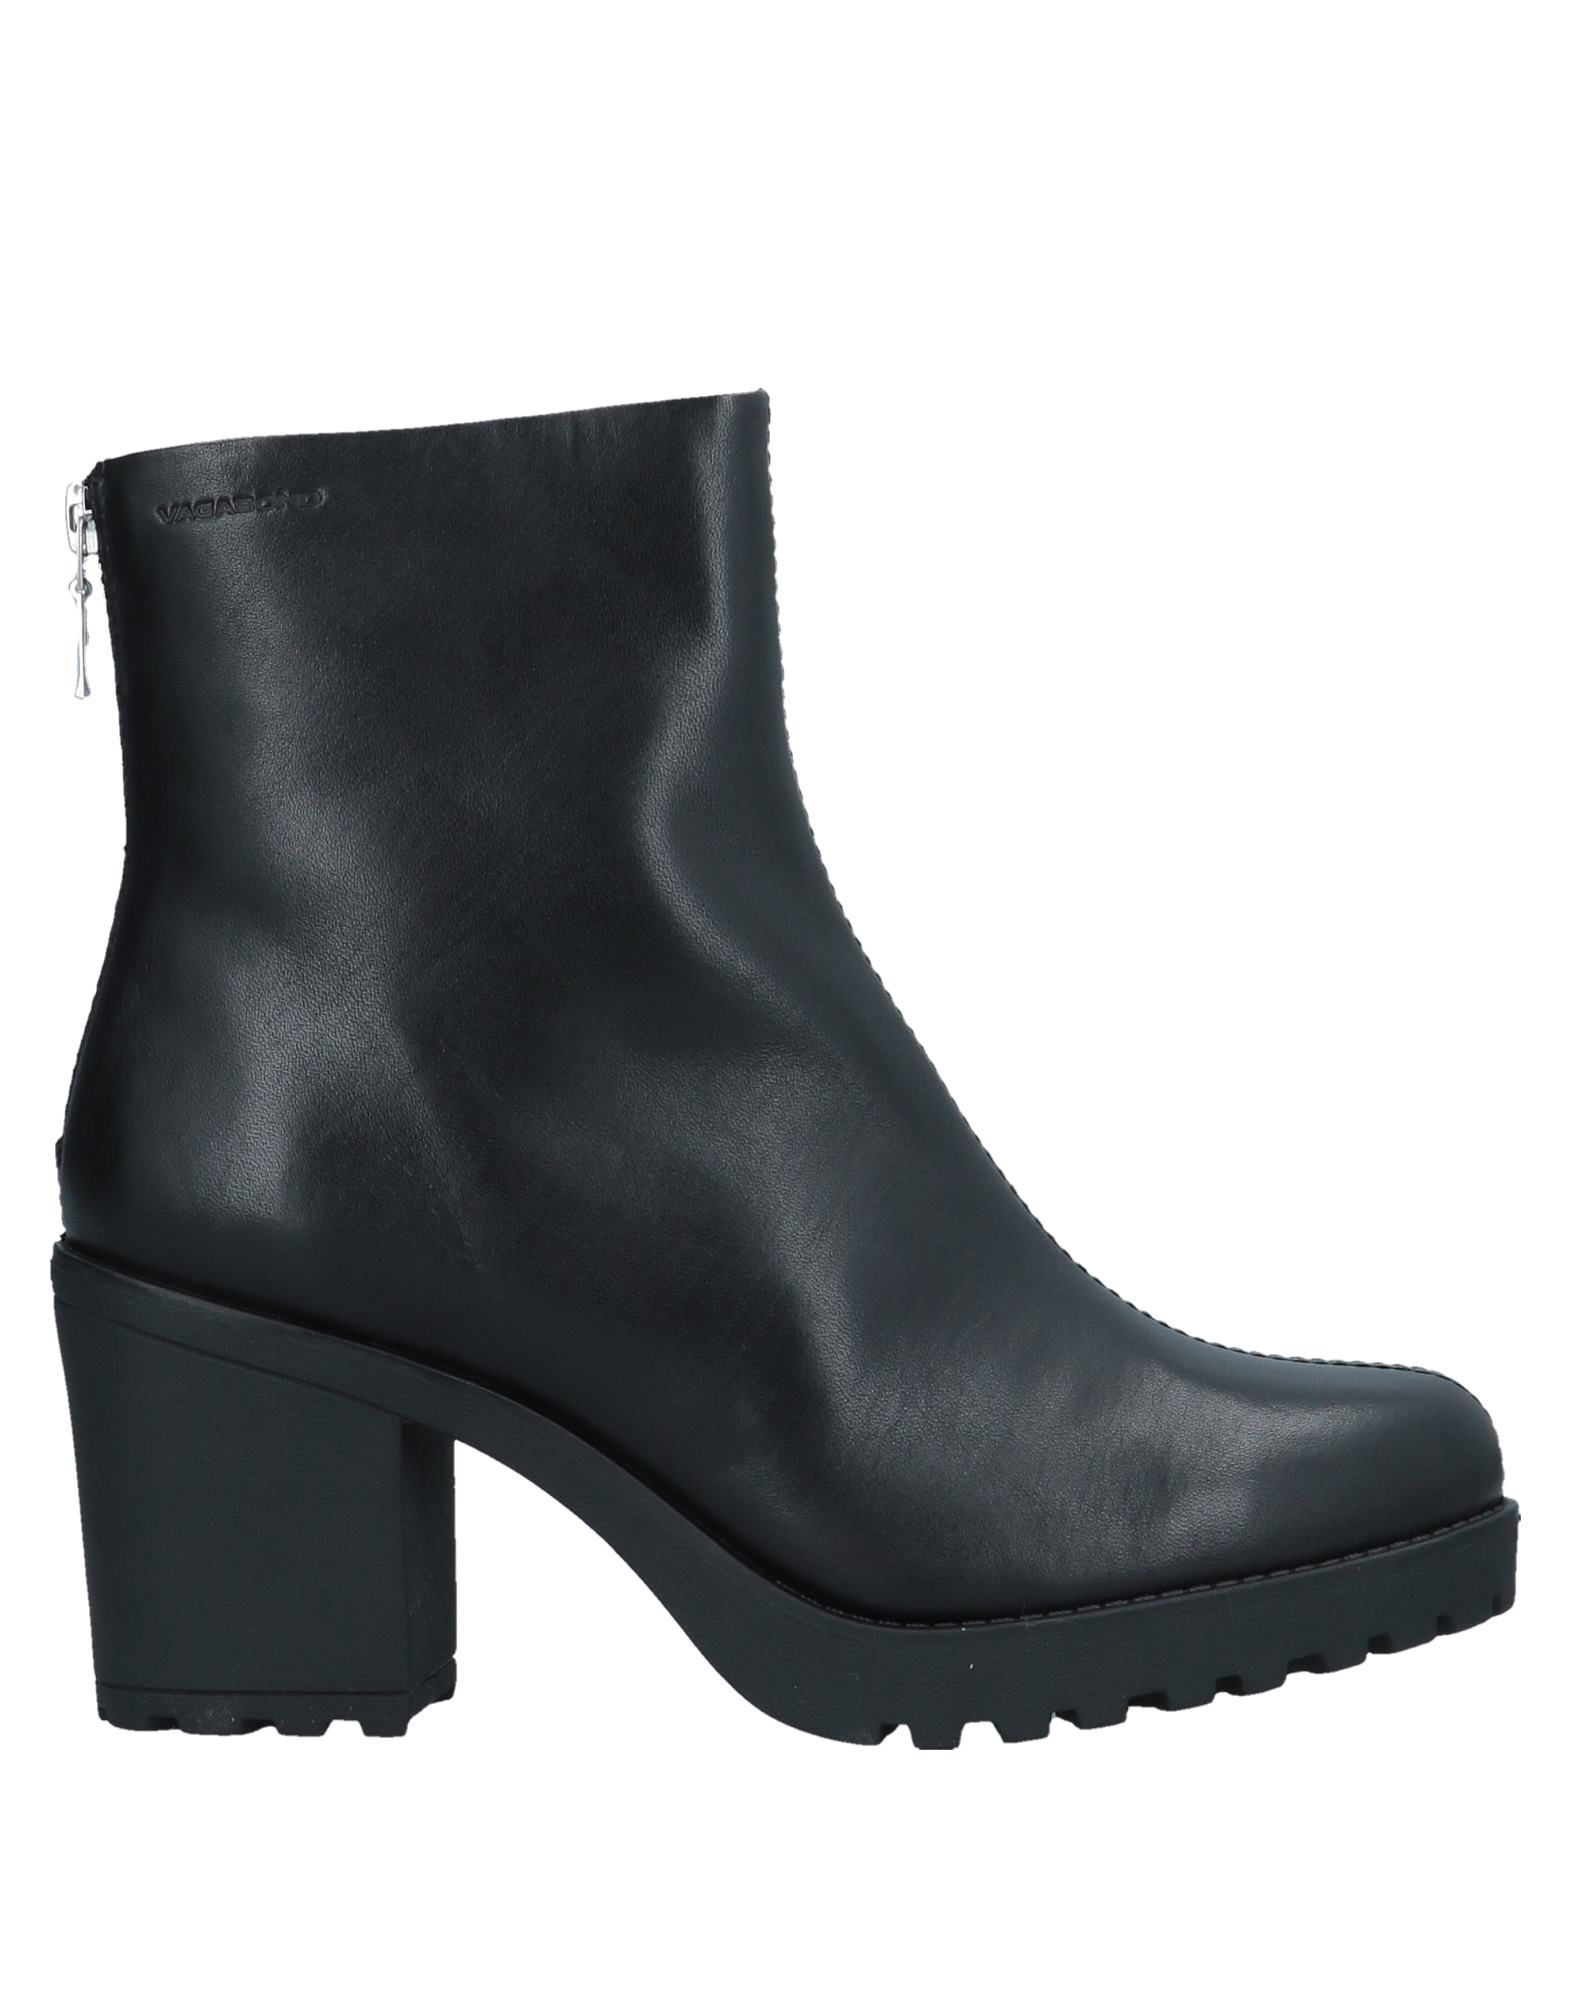 Vagabond Shoemakers Ankle Boot Boot Ankle - Women Vagabond Shoemakers Ankle Boots online on  Australia - 11574069JS 827ab7